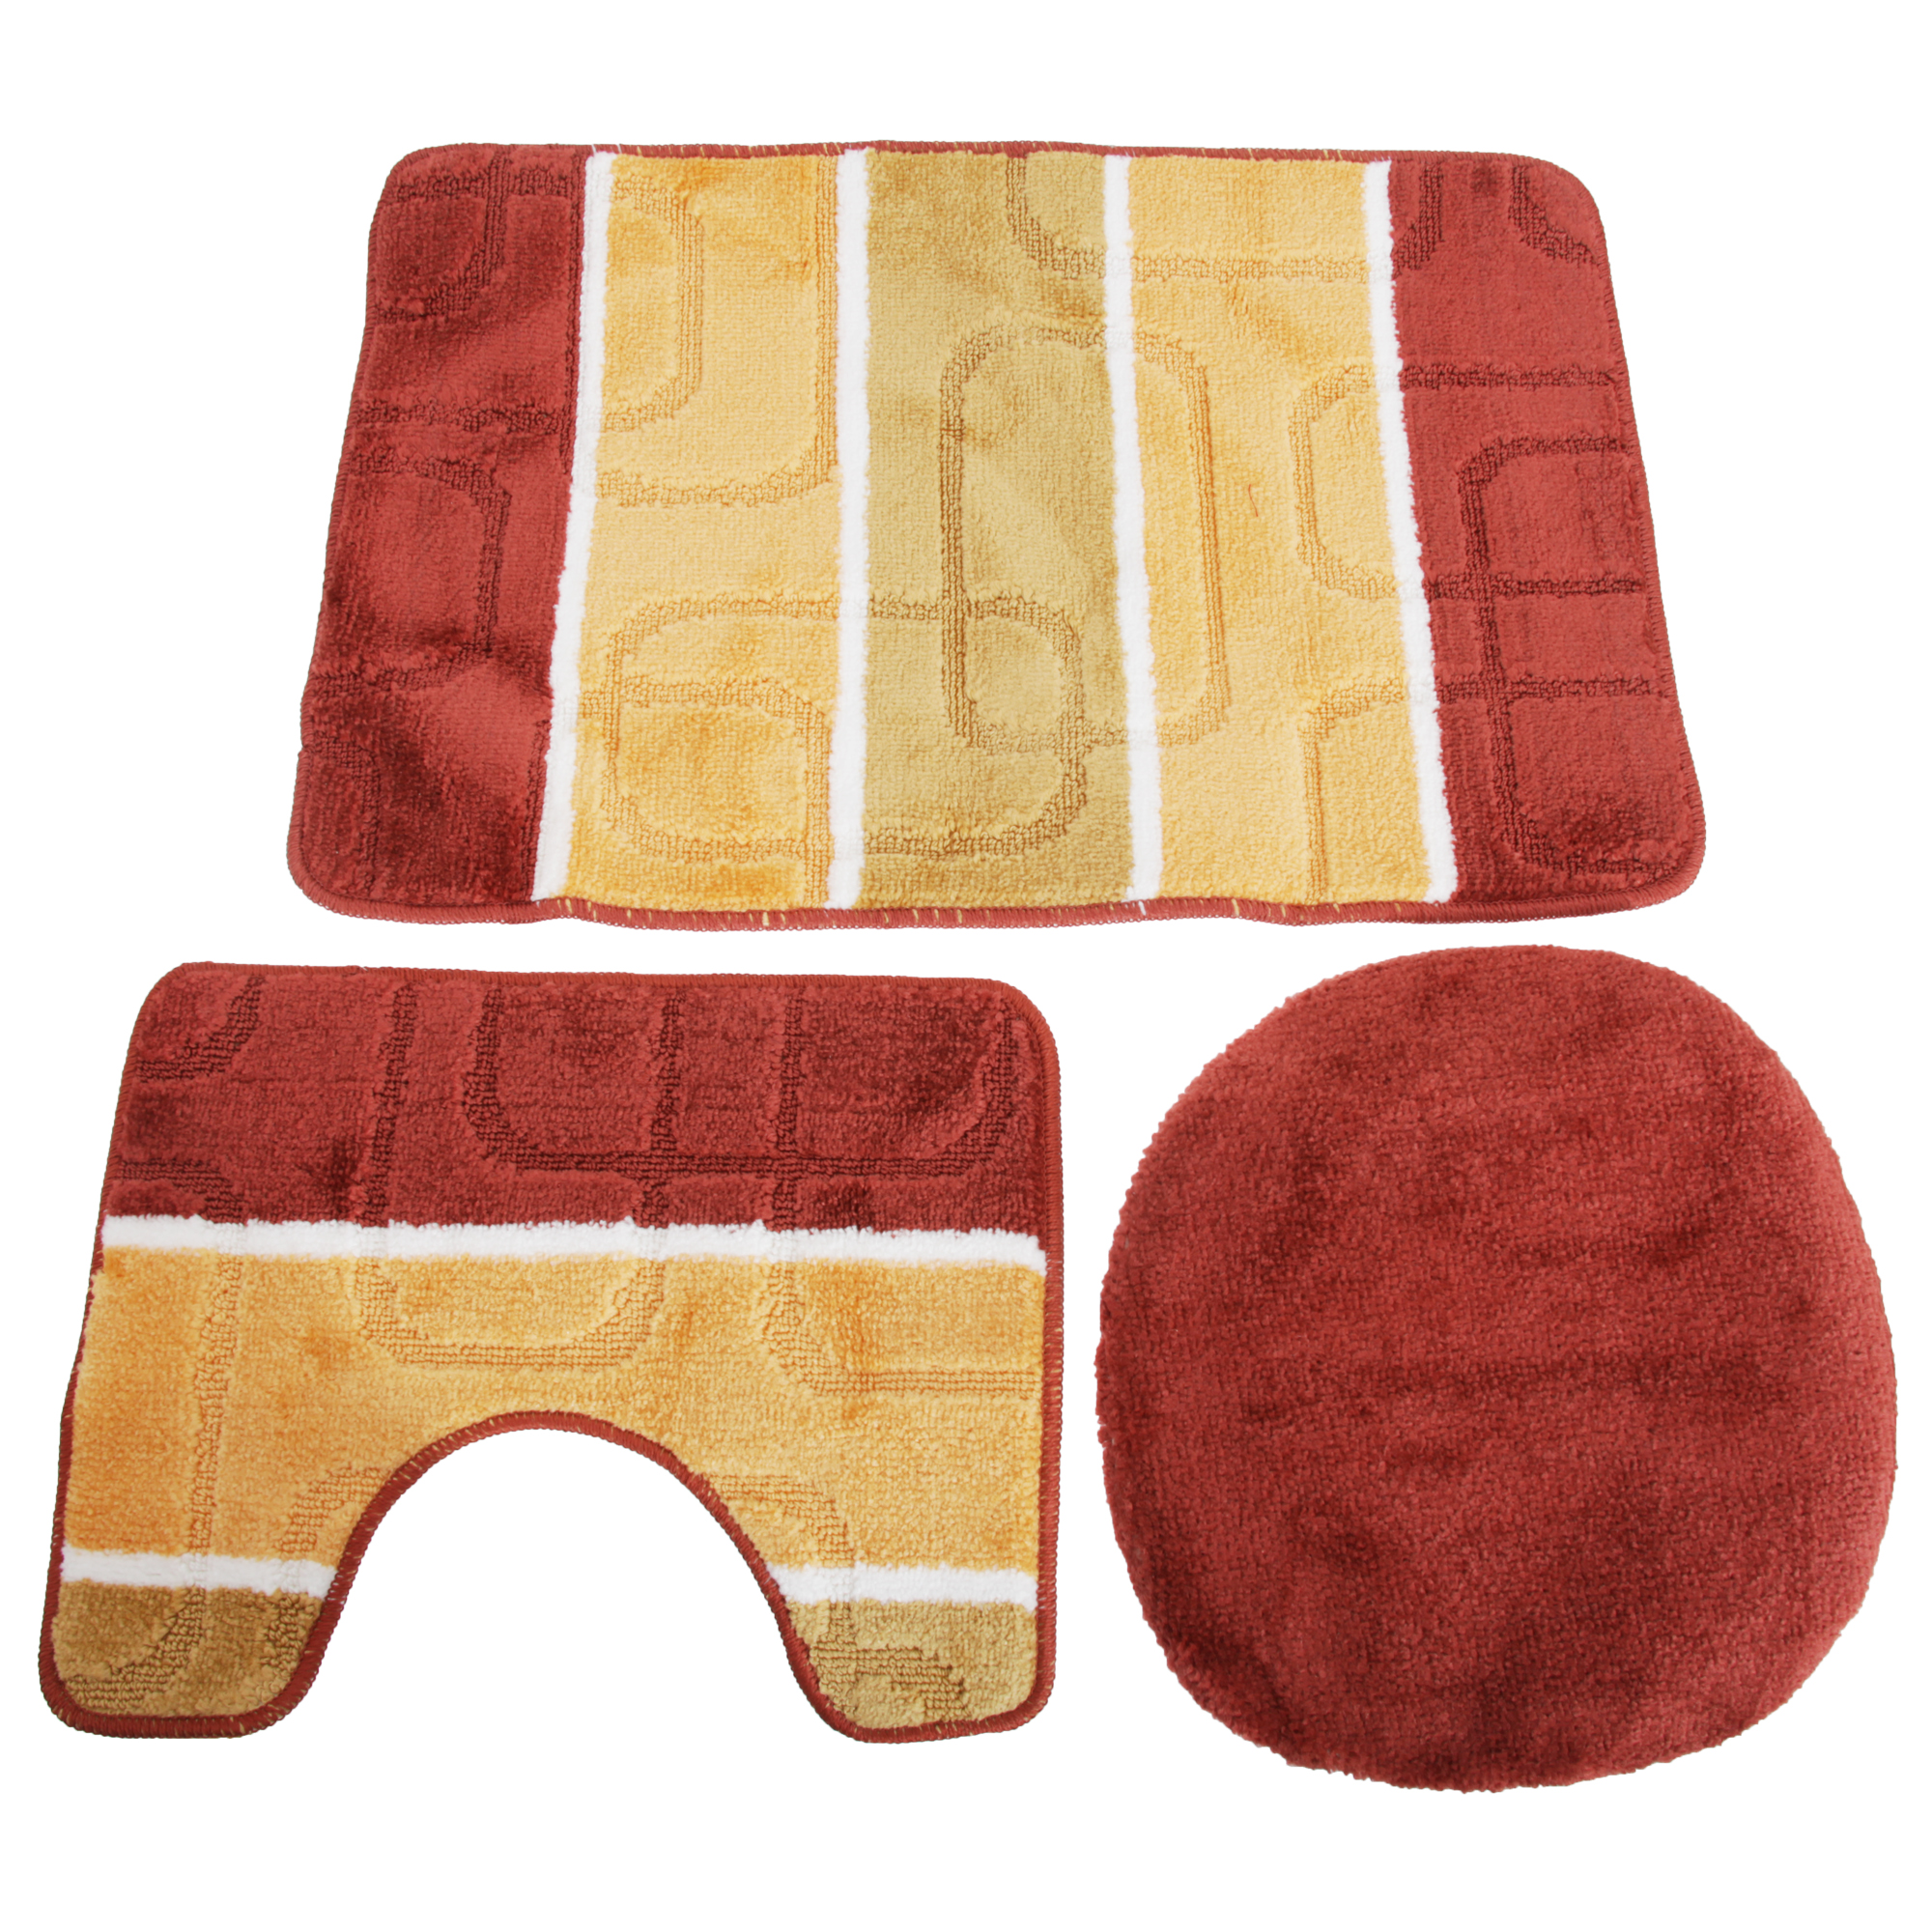 Bathroom Rugs And Toilet Seat Covers Plush Bath Rug Set